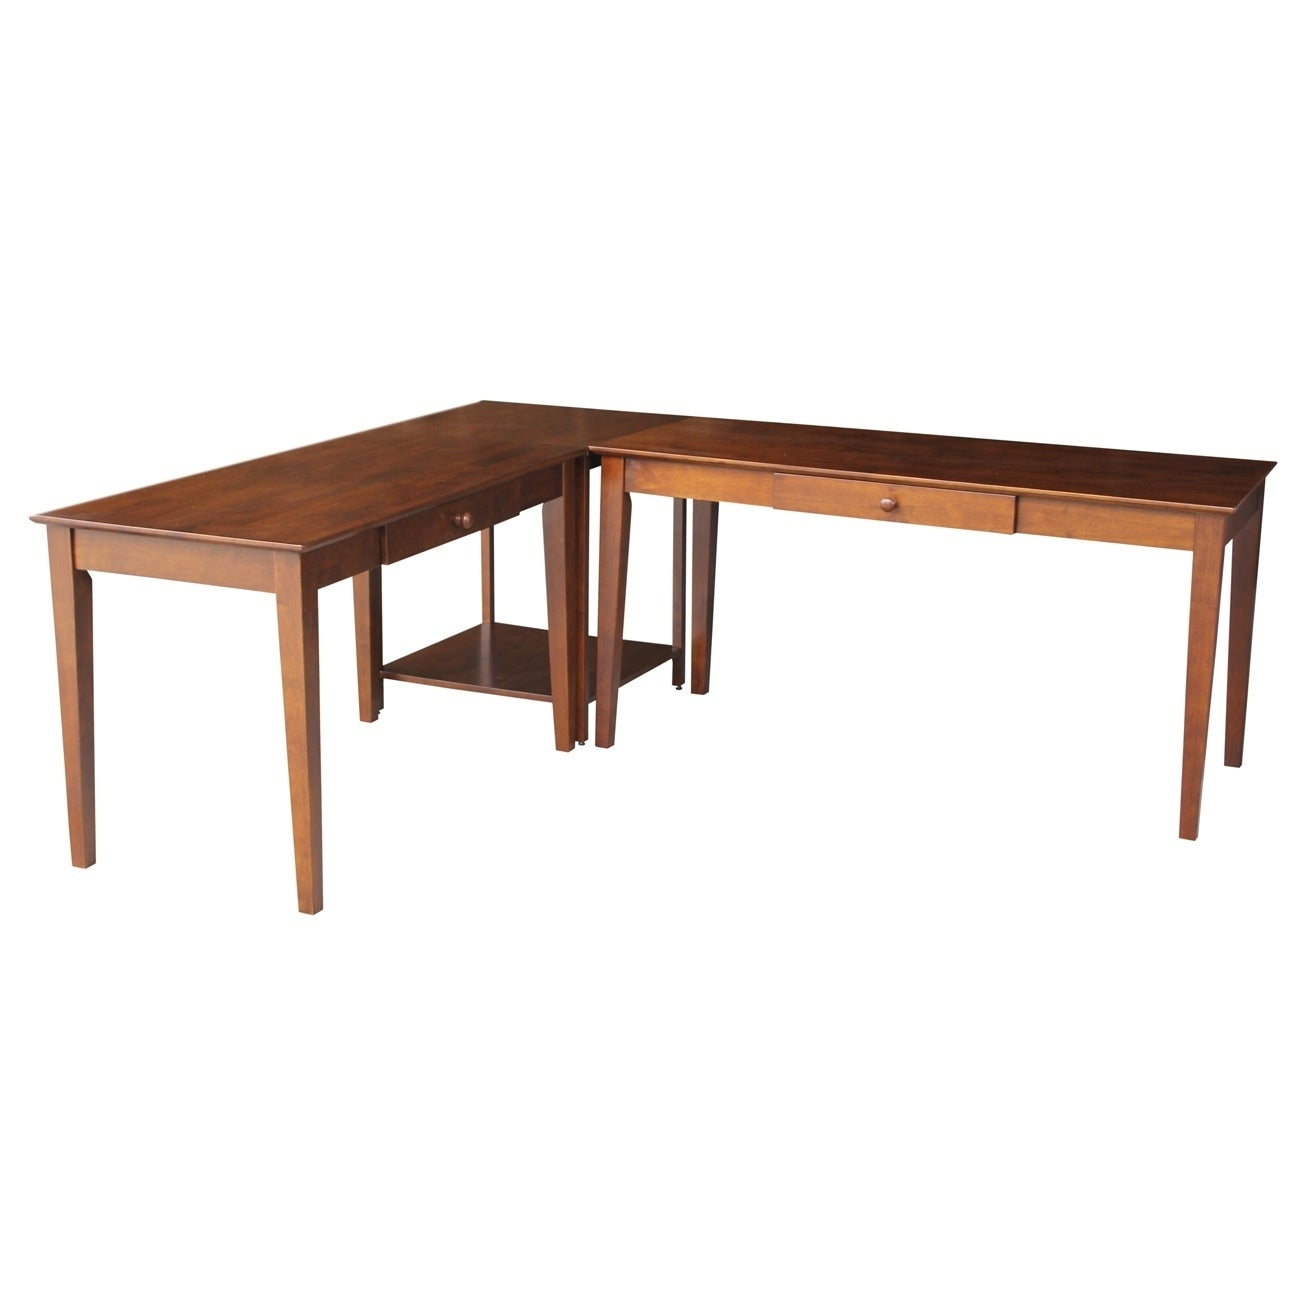 Basic 3 Piece Large Espresso Desks Connecting Table Set Free Shipping Today 9310072